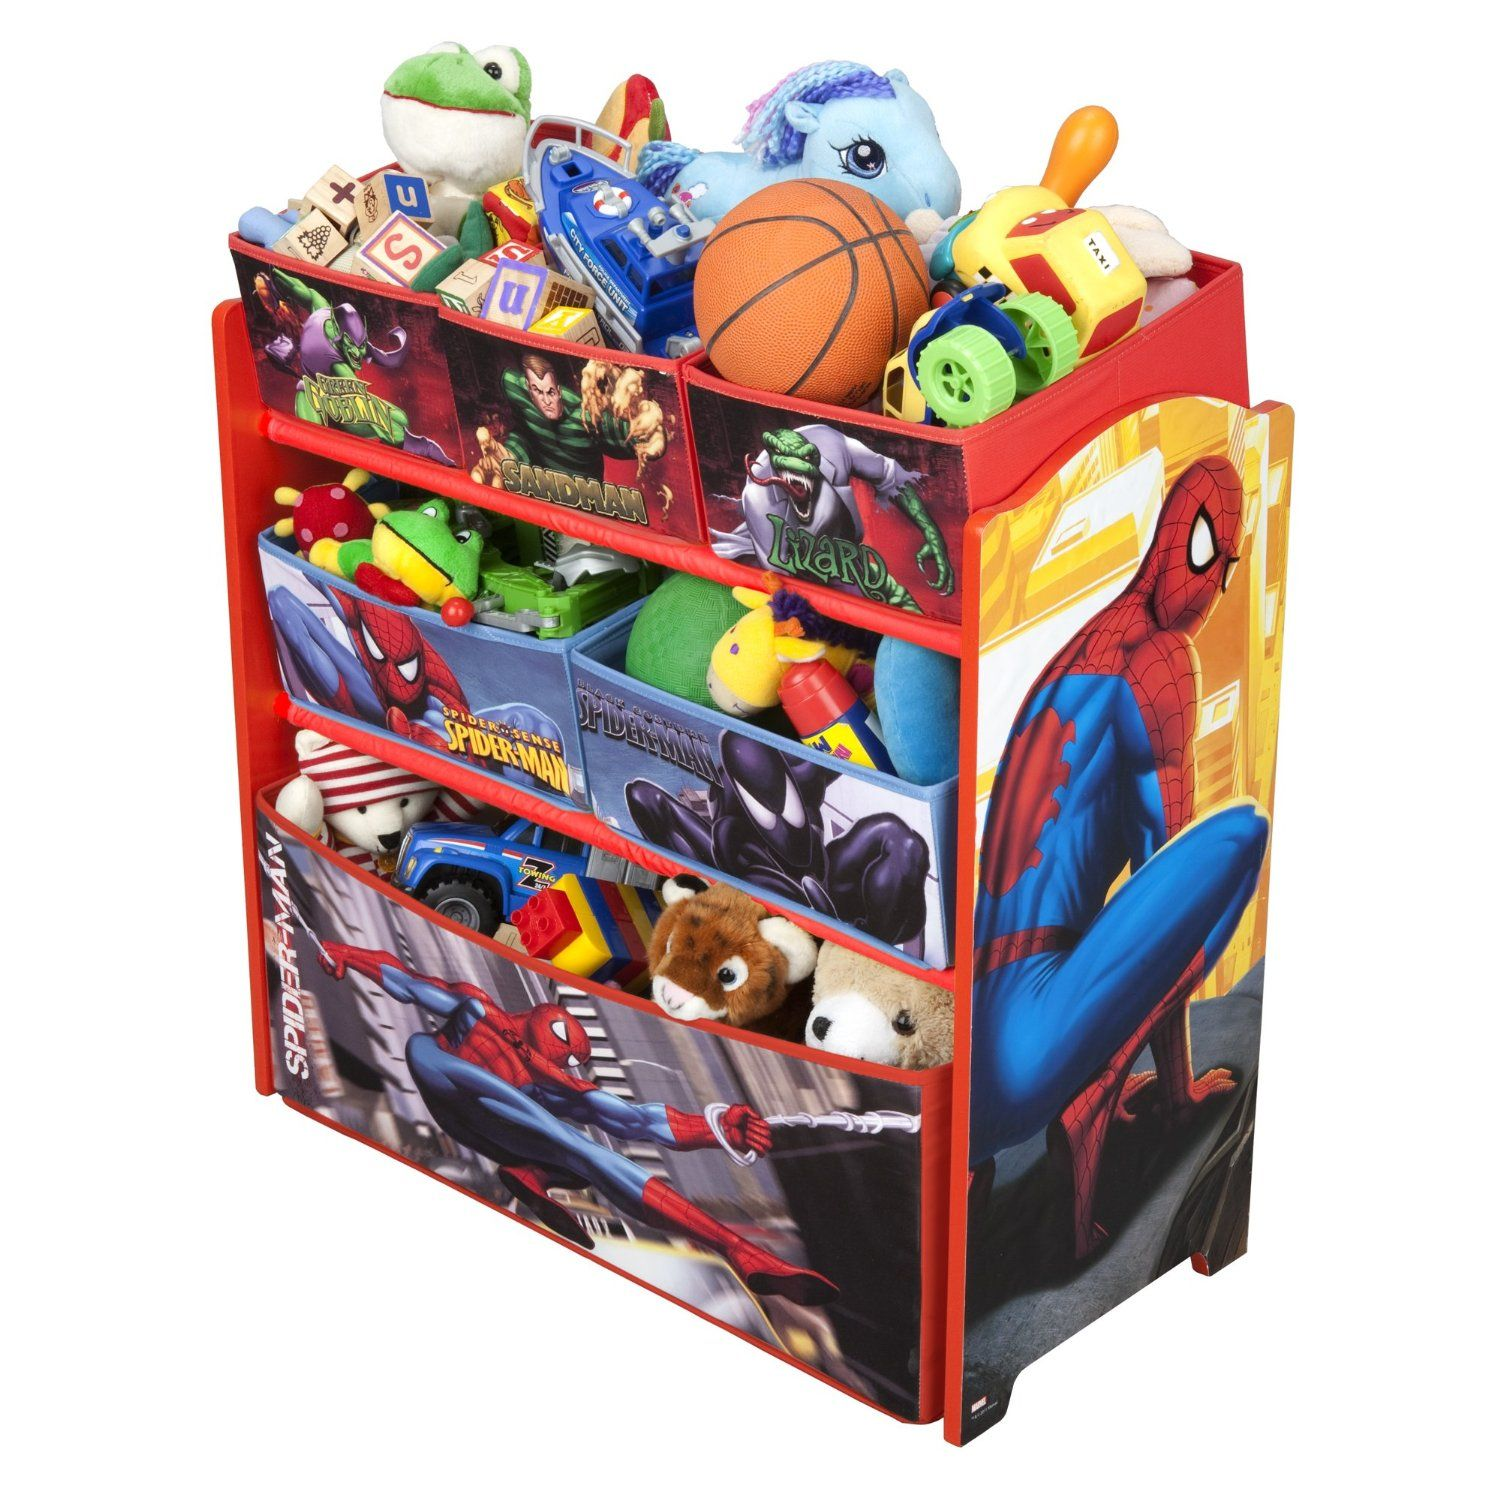 toys upuei bedrail bedroom double white sets batman babies of construction down swing home latest decor sided r concept set waaxt us spiderman